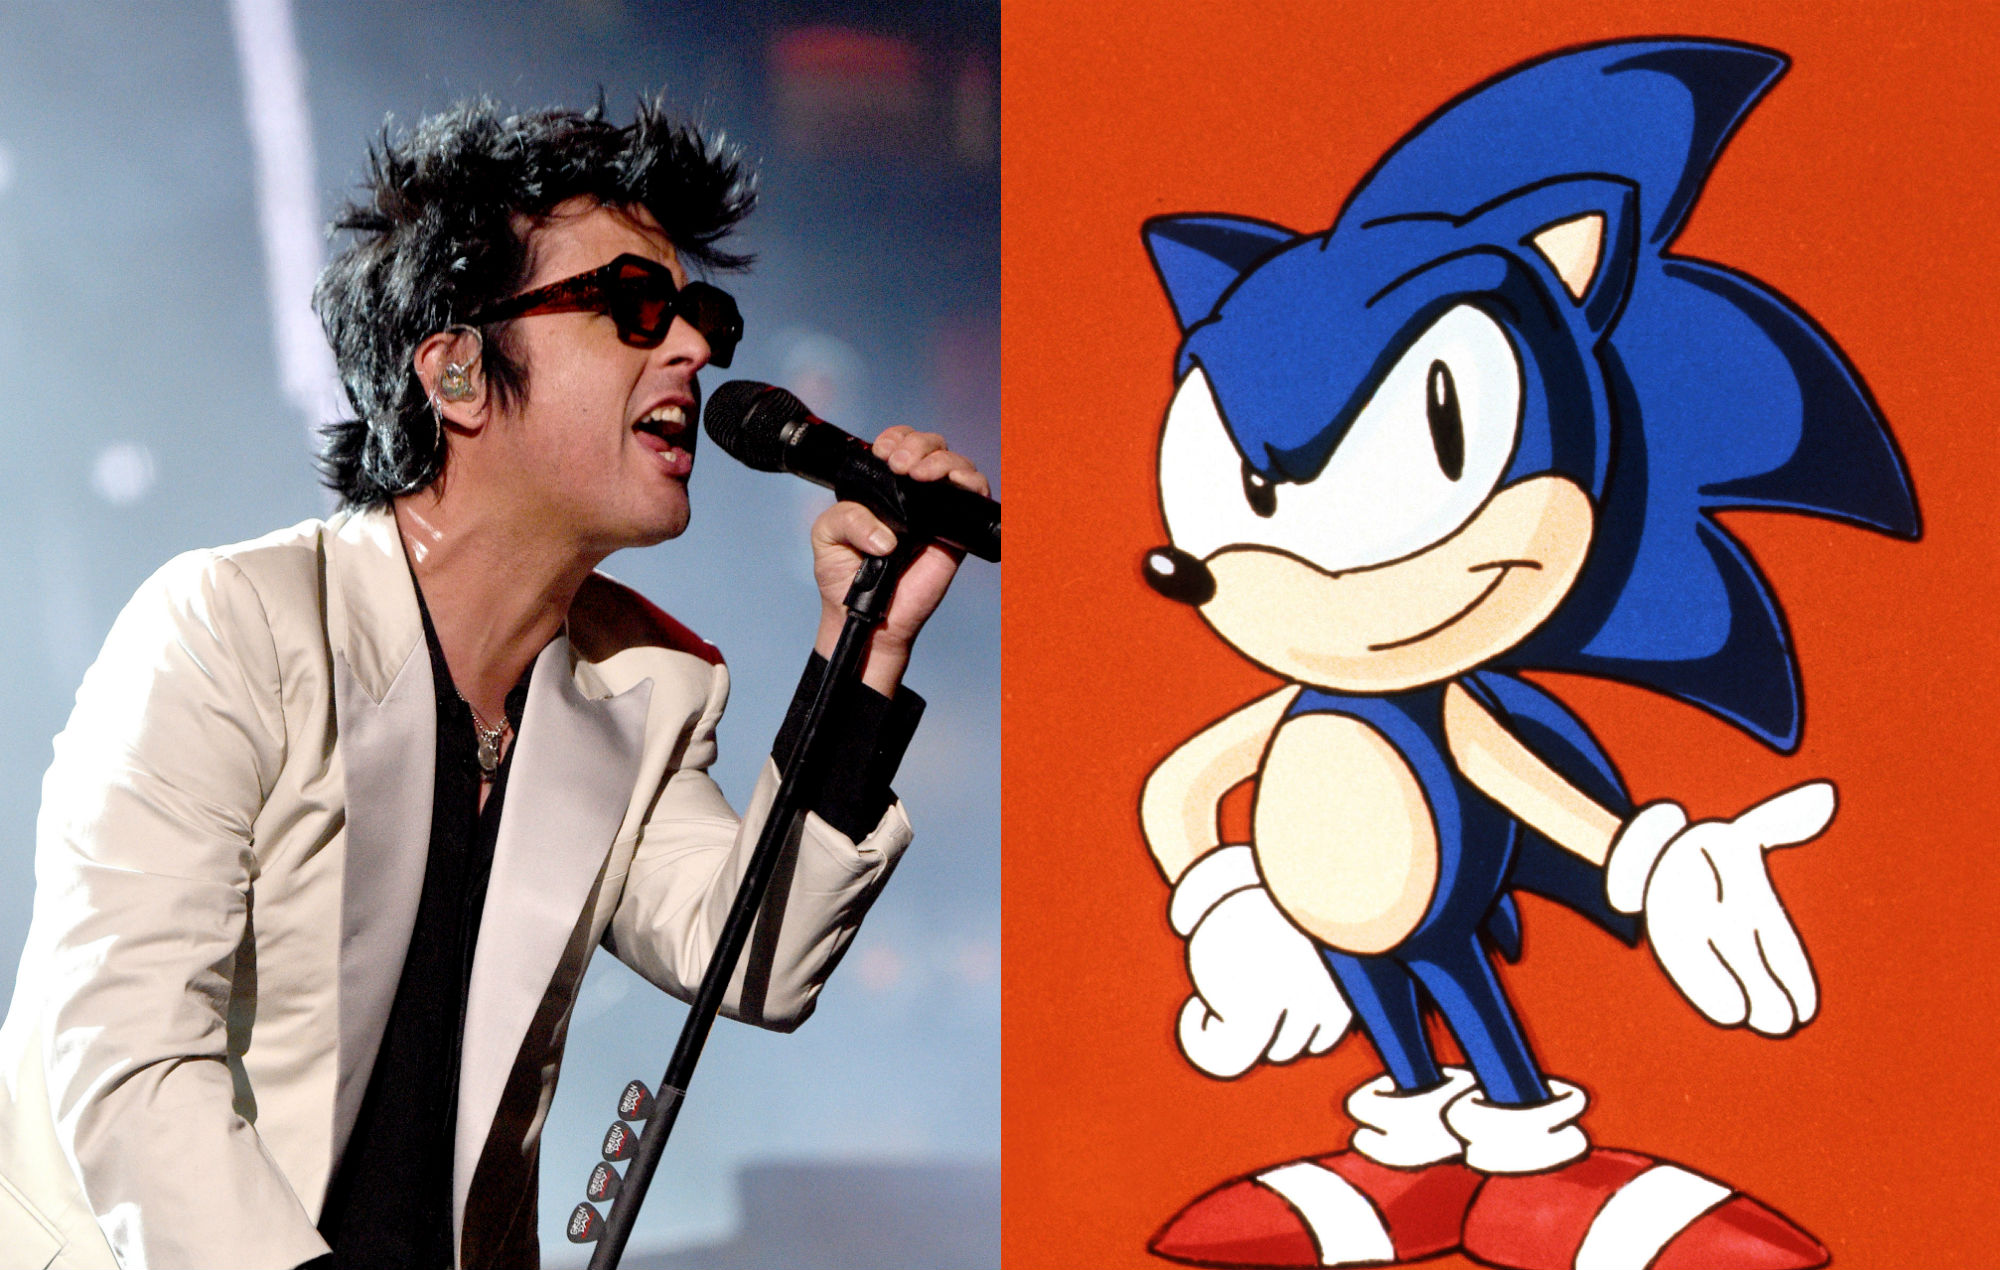 Here's Green Day in the style of a Sega Megadrive soundtrack